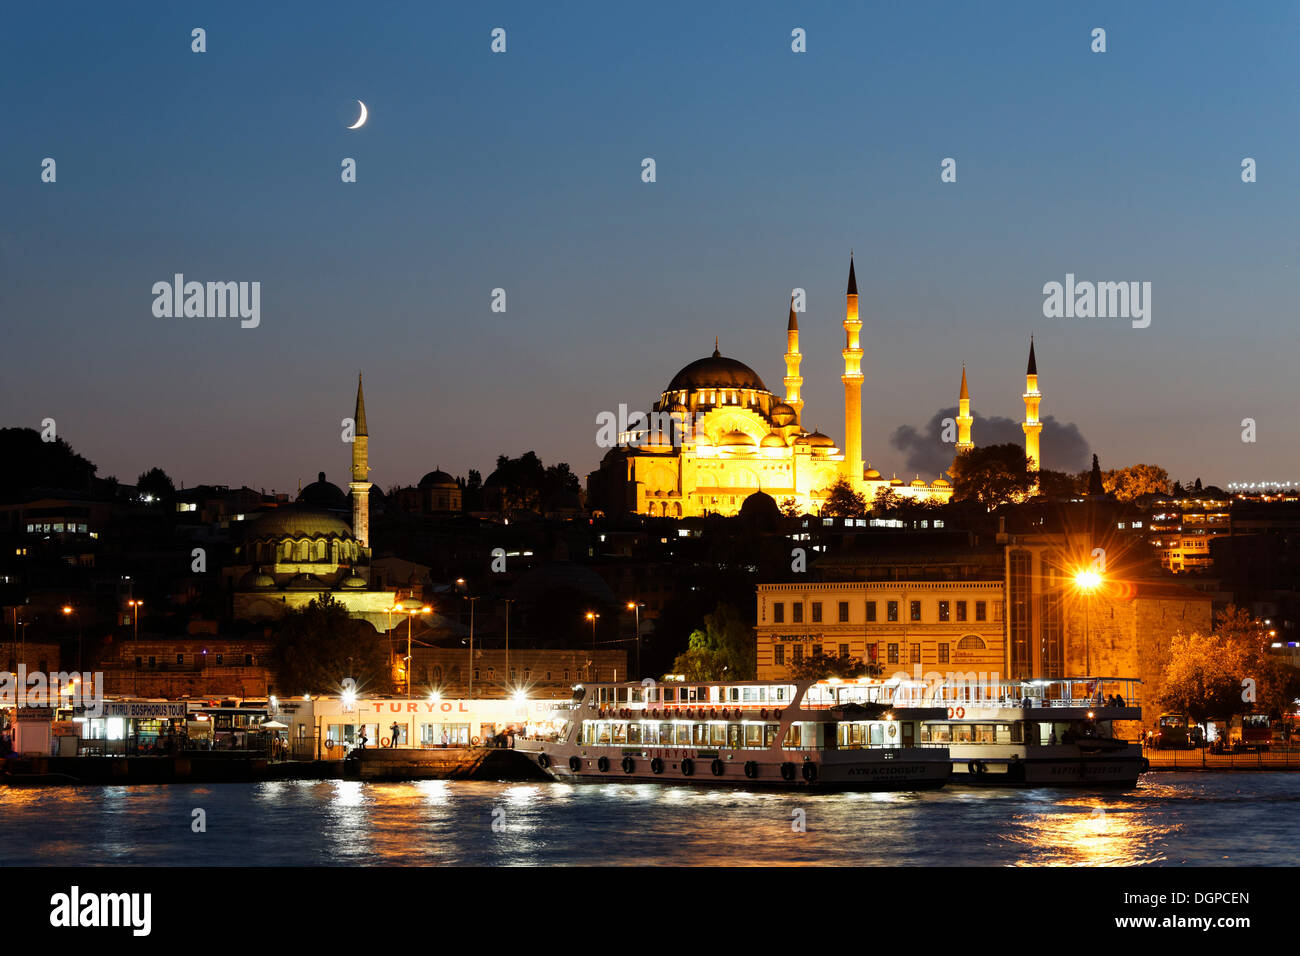 Golden Horn with the Eminönü neighbourhood, Rüstem Pasha Mosque, left, and Süleymaniye Mosque, right, Istanbul - Stock Image